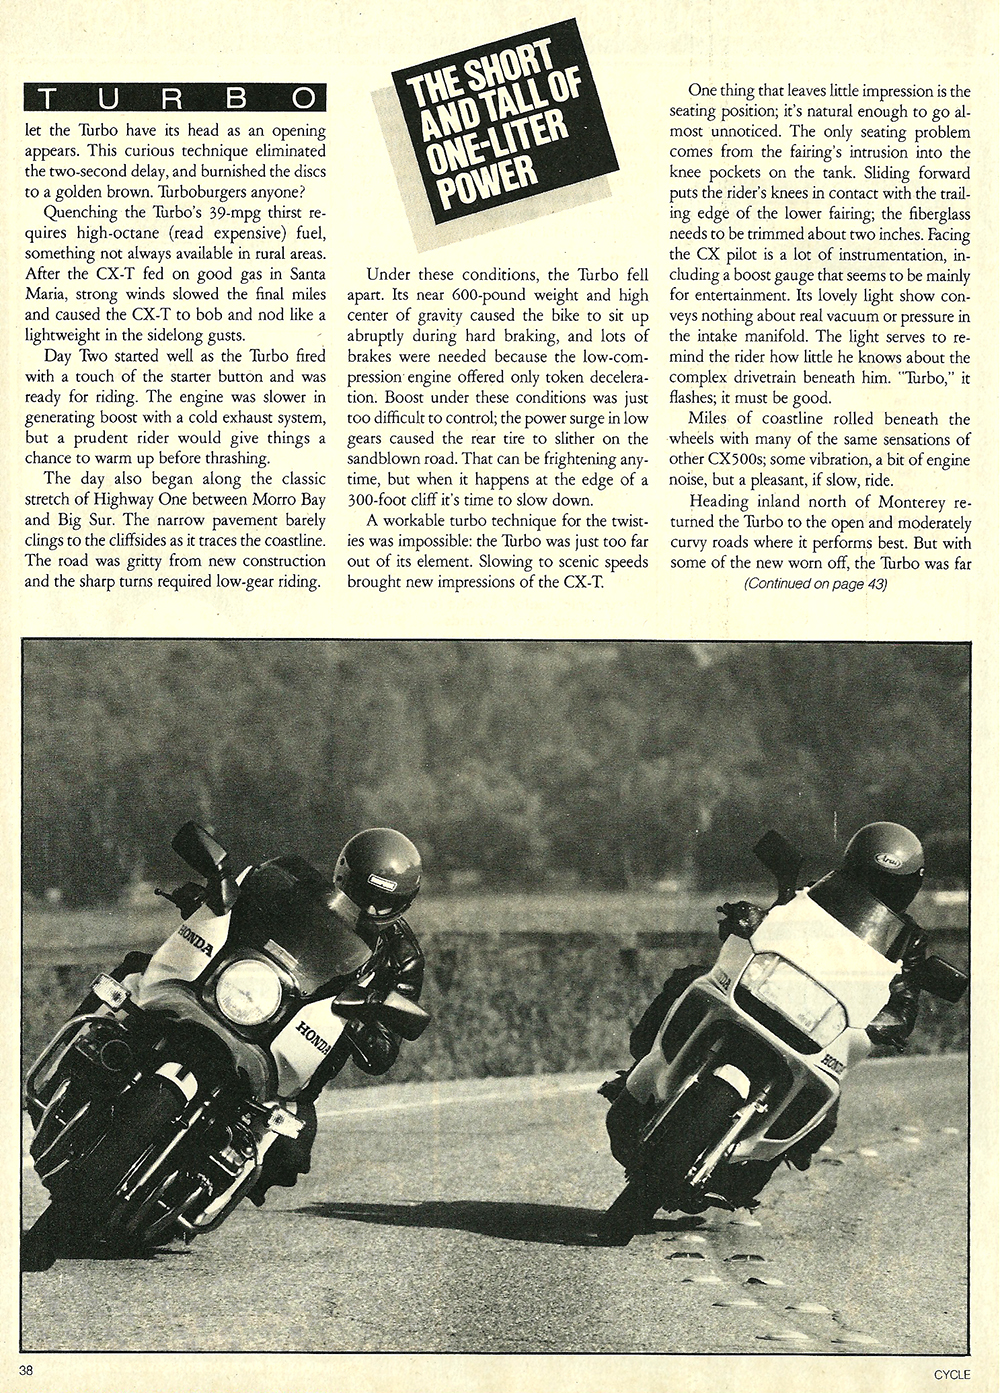 1982 Honda CBX vs CX 500 Turbo road test 07.jpg